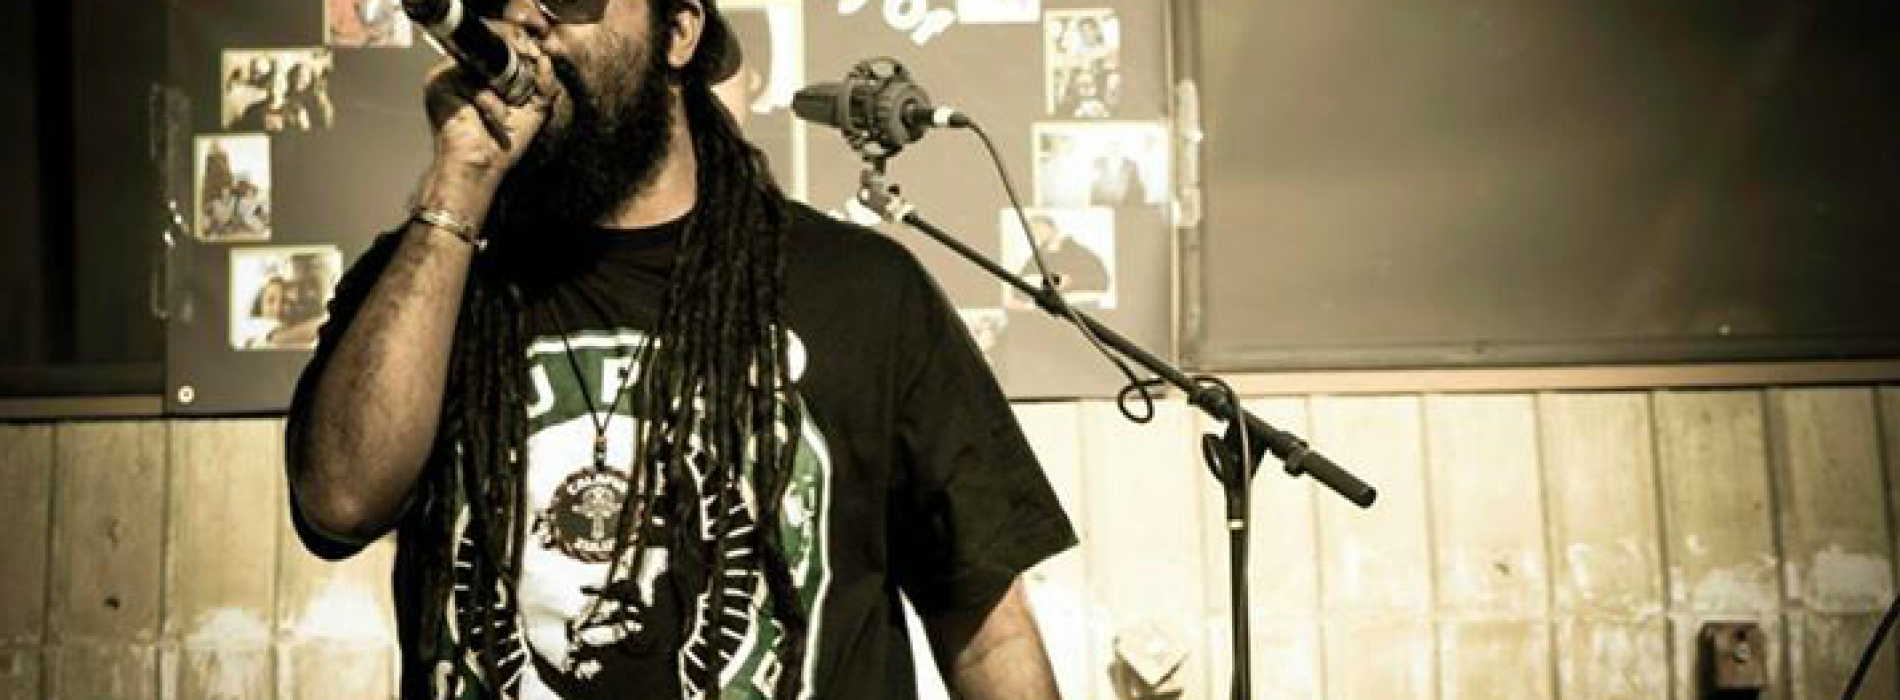 Ras Ceylon On Heal Lanka: The Documentary